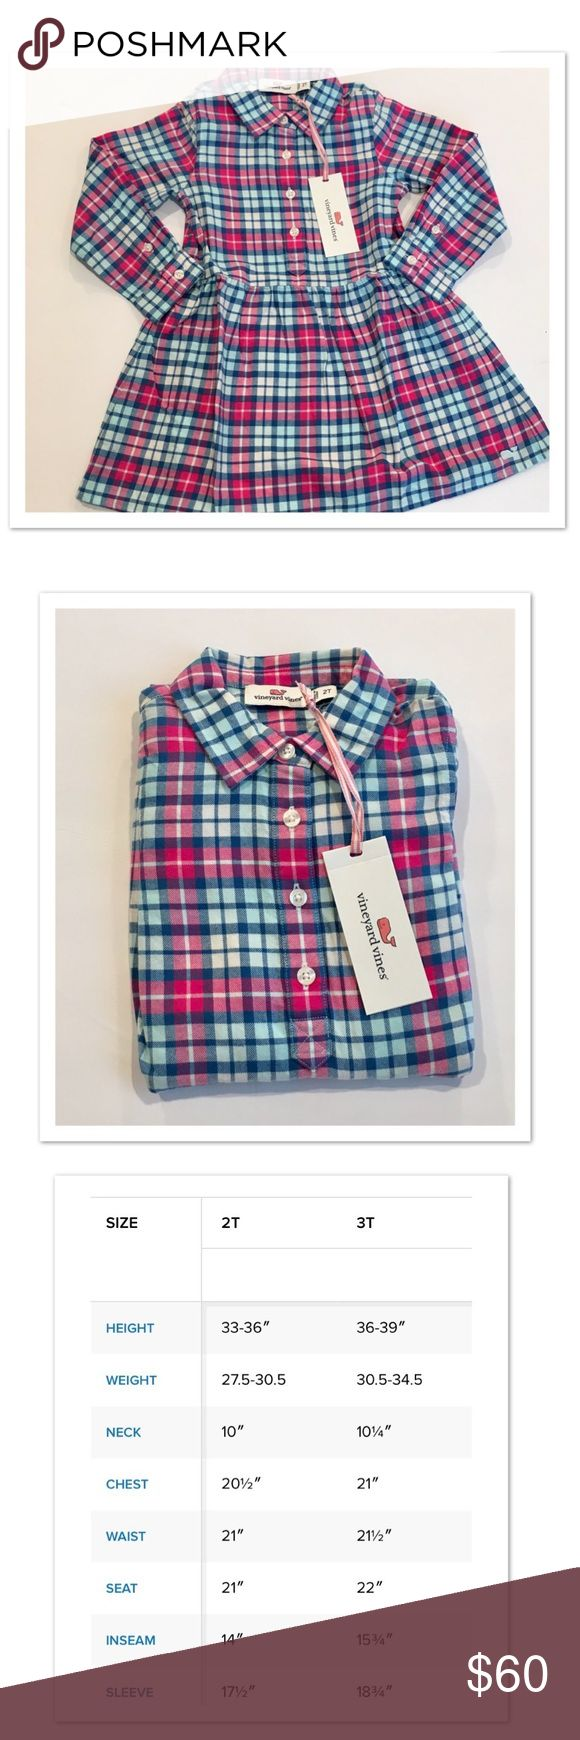 Vineyard Vines Flannel Shirt Dress Vineyard Vines piper plaid shirt dress. 100% Cotton flannel soft!   Features: · Brother and sister matching style!   · Long sleeve shirt waist dress  · Button down front placket with collar  · Length hits above knee Vineyard Vines Dresses Casual